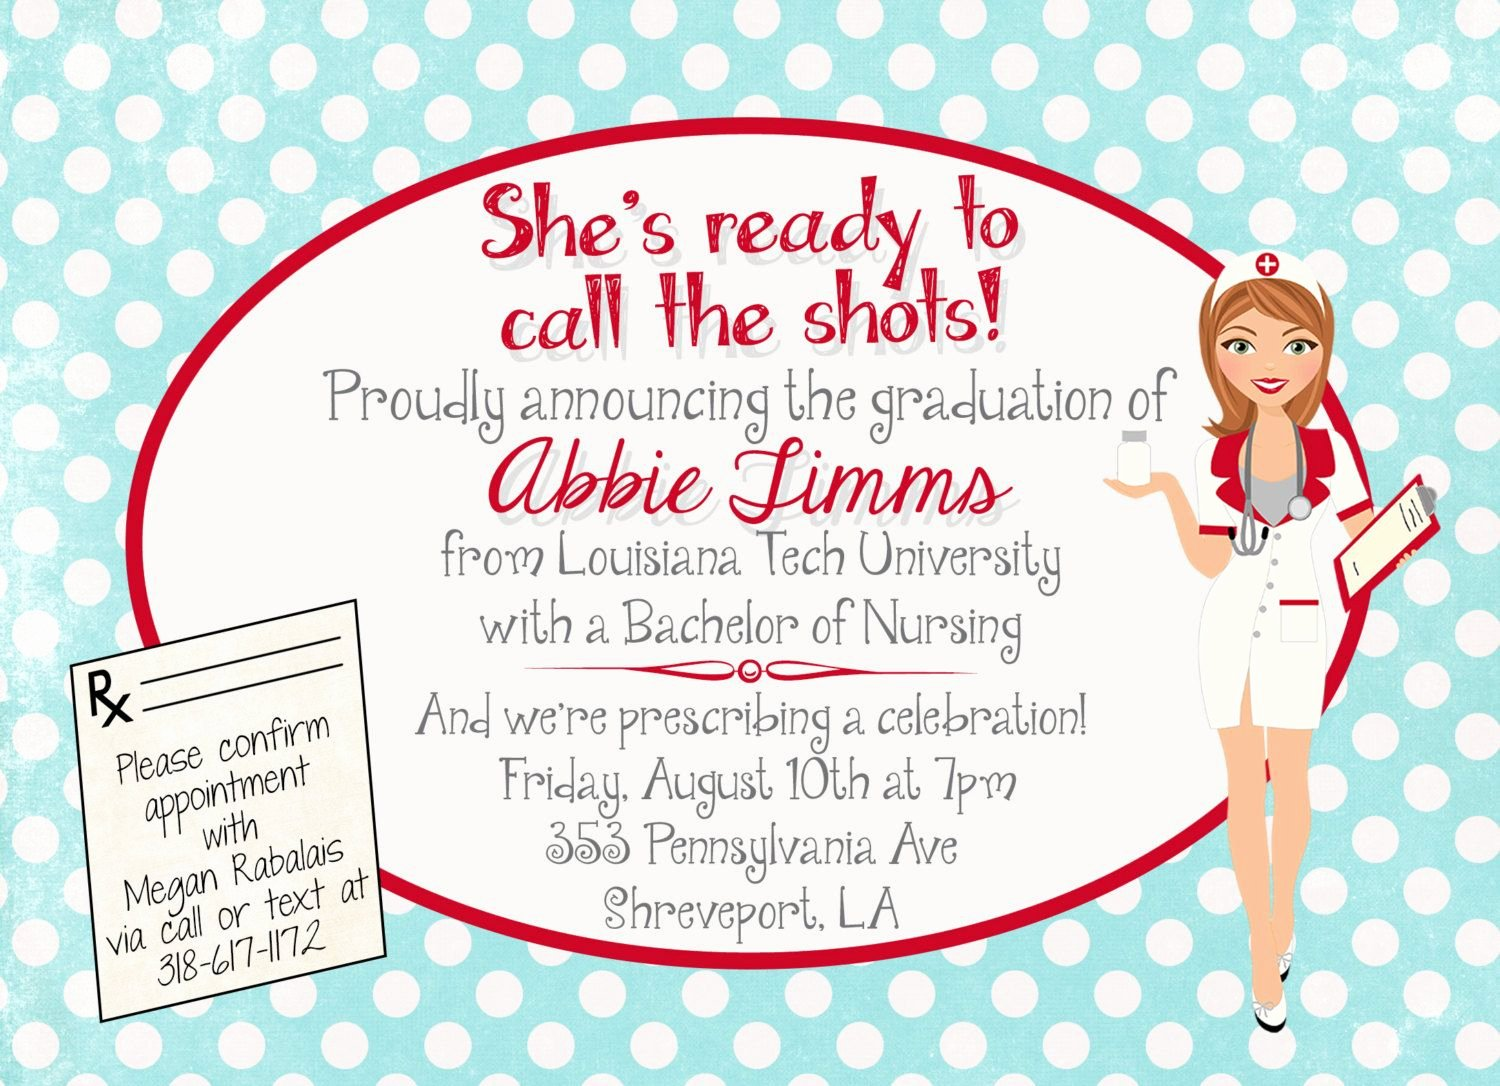 Nursing School Graduation Invitations Best Of Customized Nursing Graduation Party Invitation by andyneal331 $15 00 Party